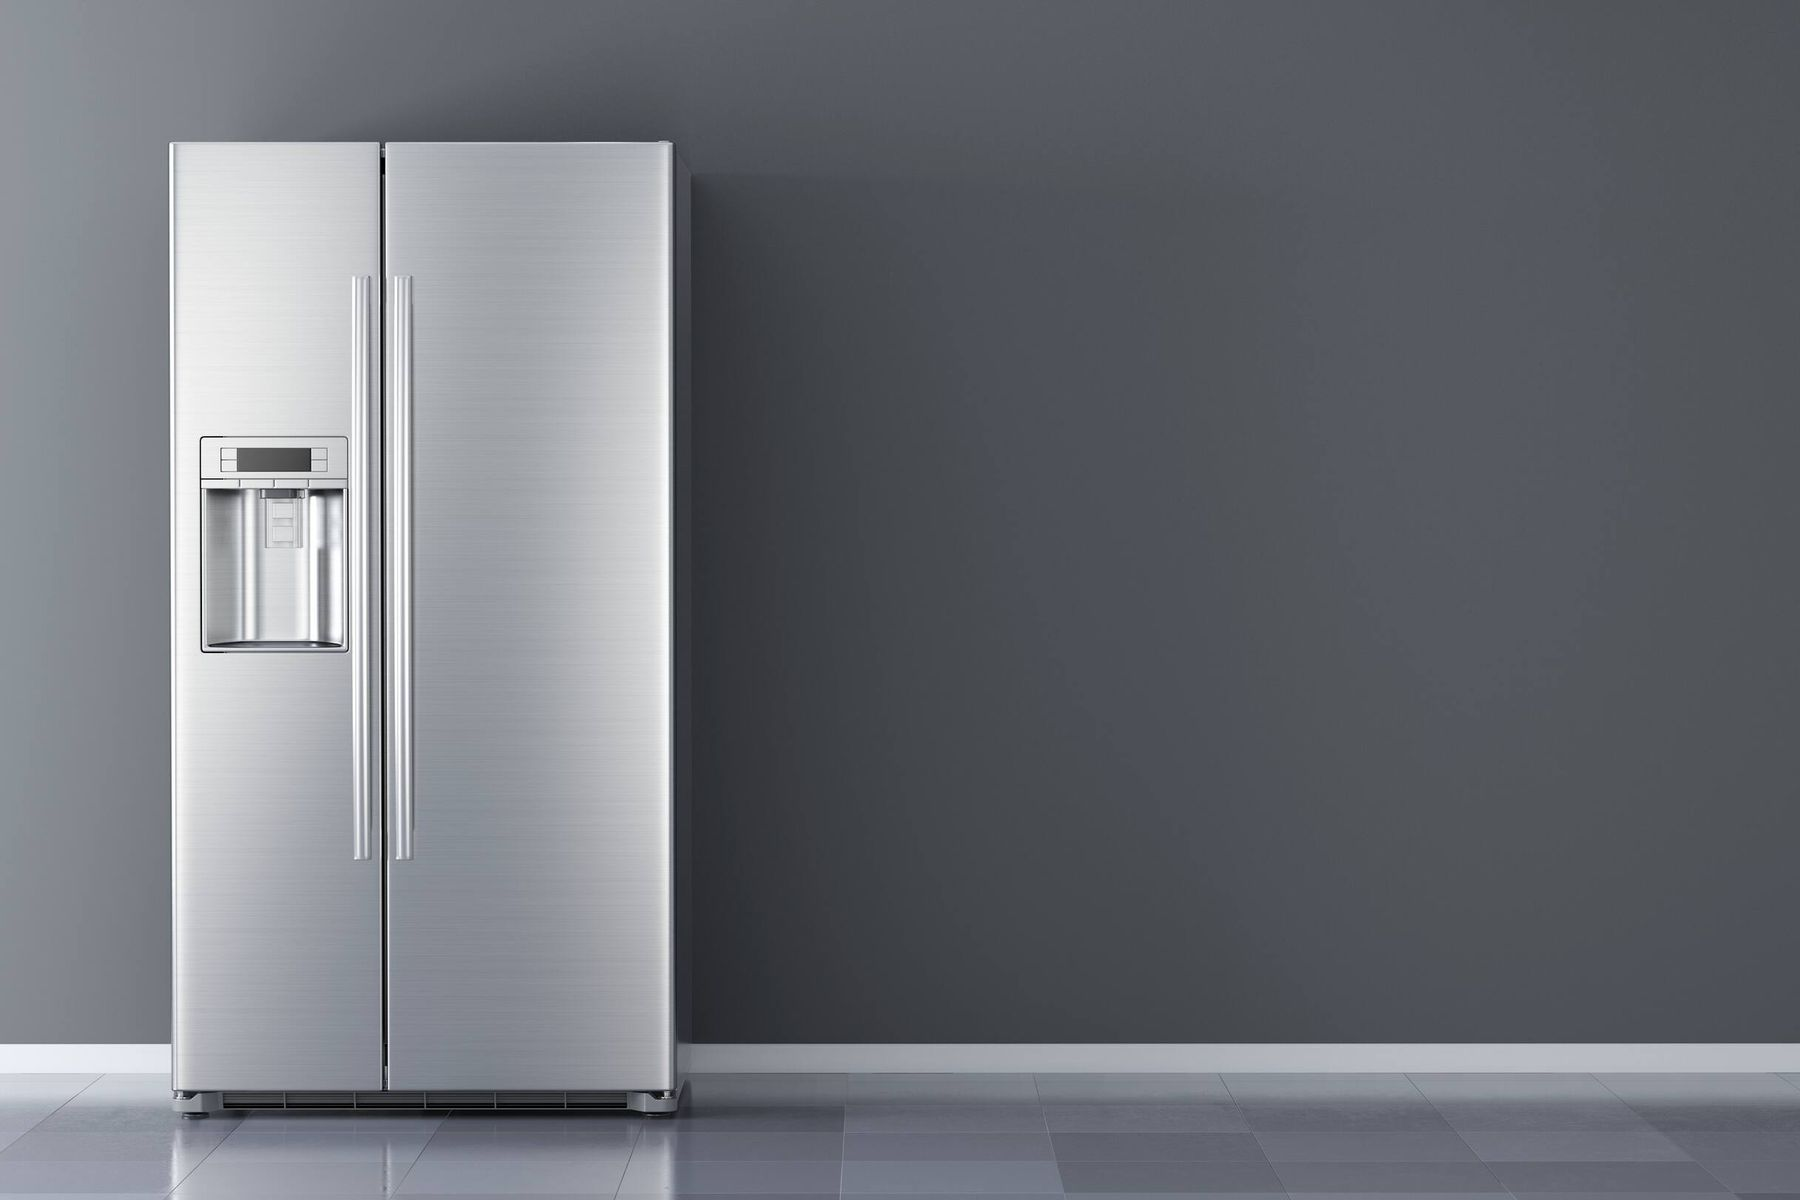 Follow this Cleaning Process to Keep your Refrigerator Exteriors Looking Like New